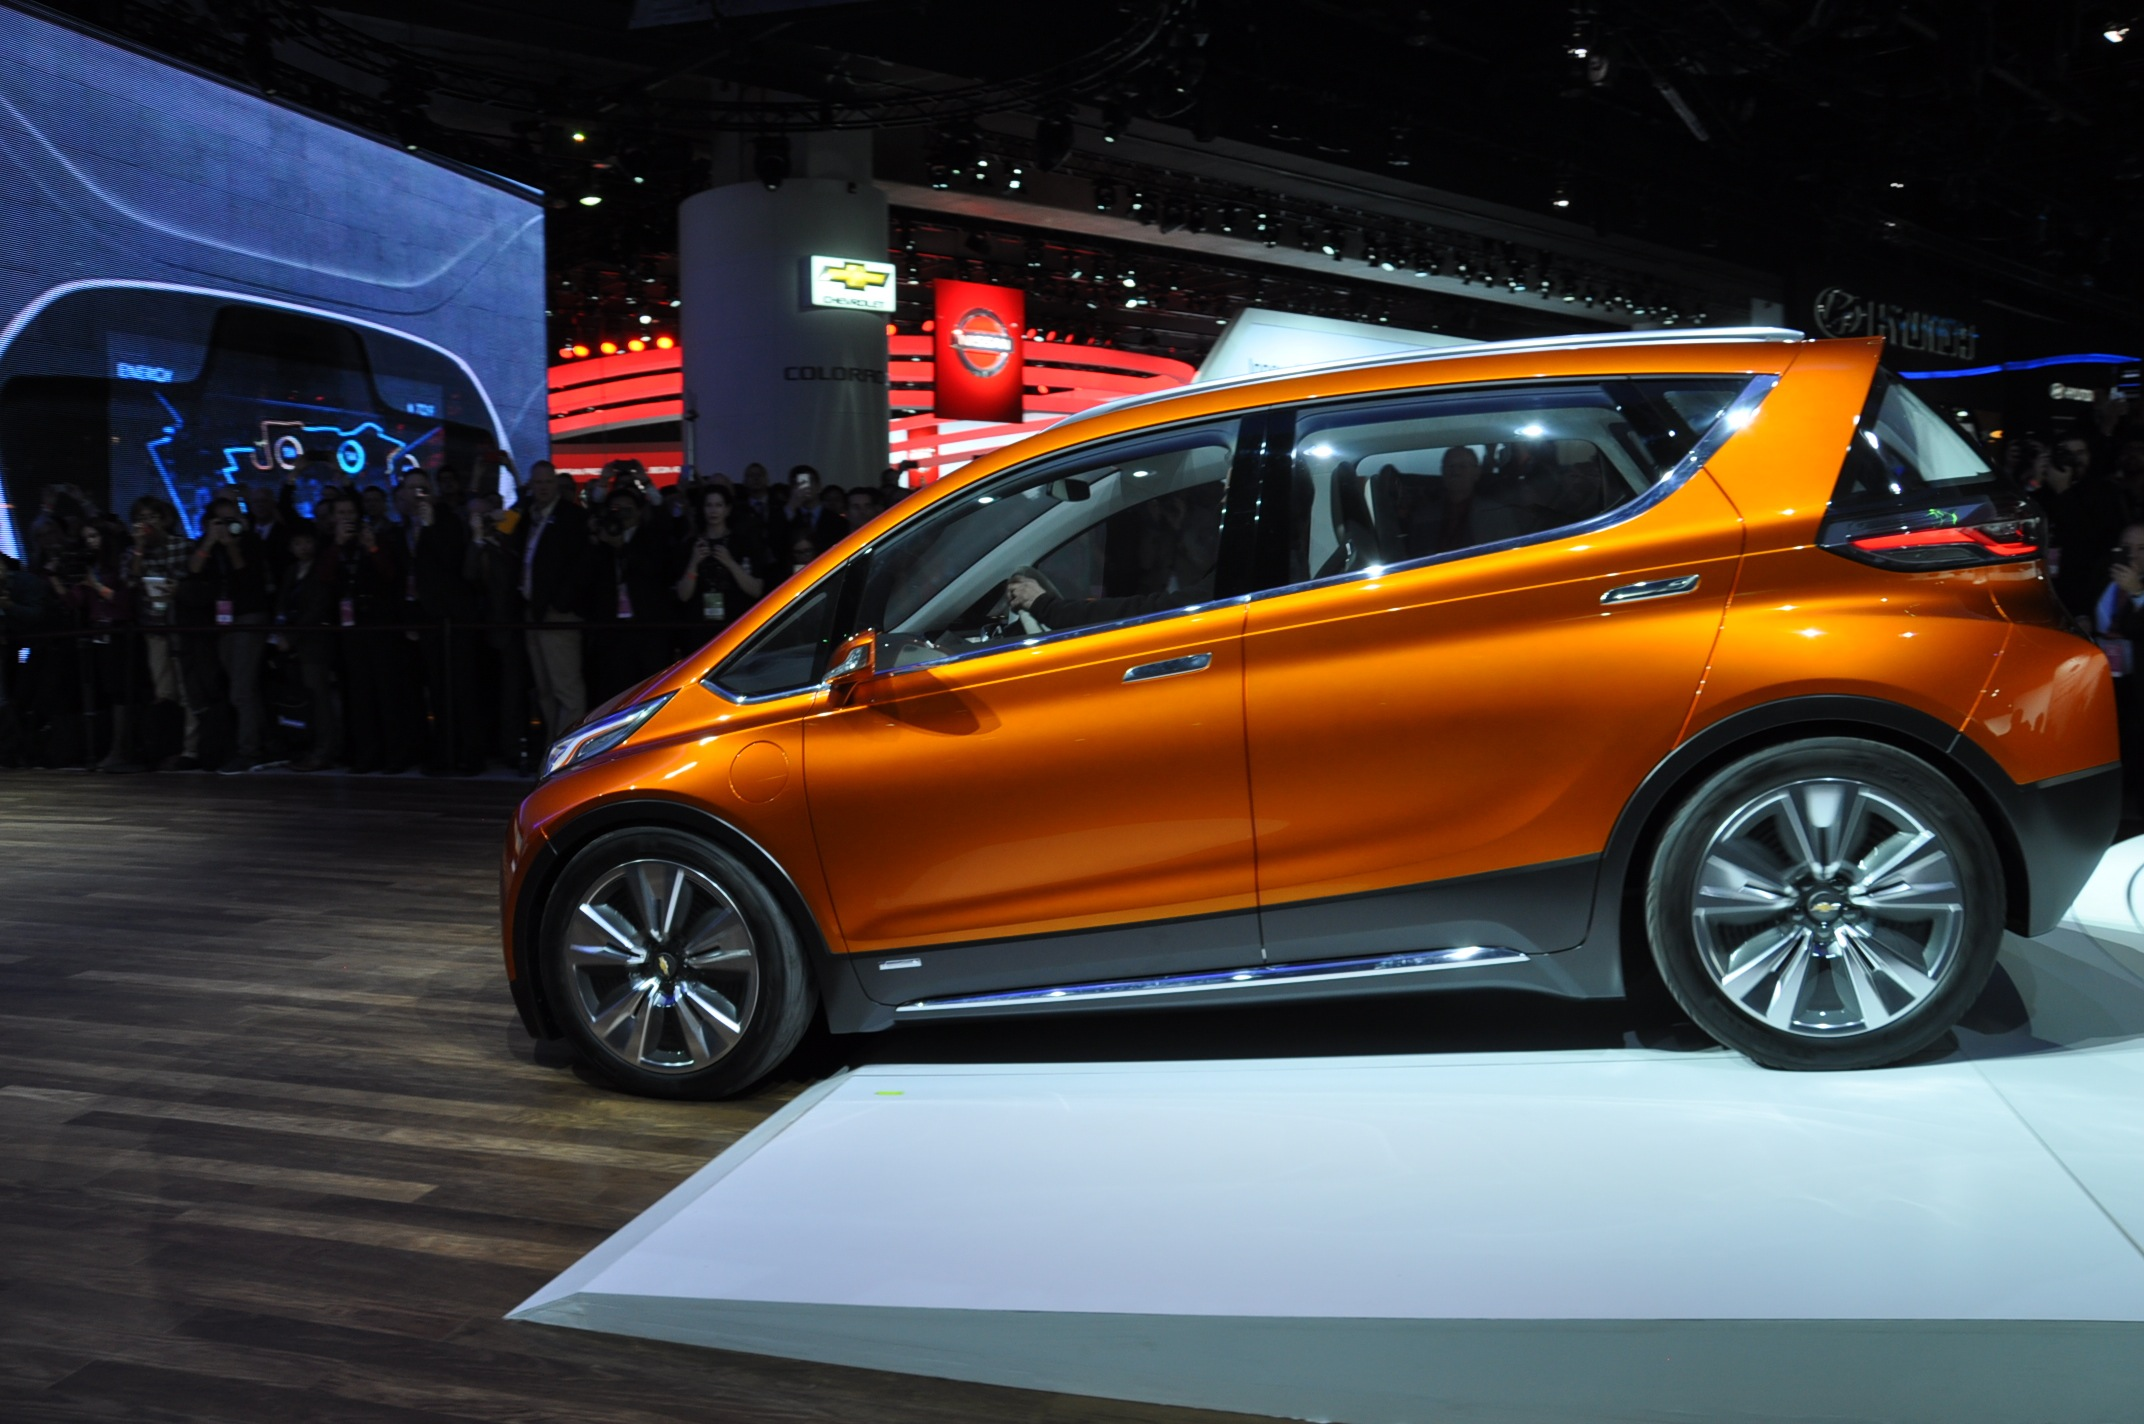 2018 chevrolet bolt ev release date price range autos post. Black Bedroom Furniture Sets. Home Design Ideas